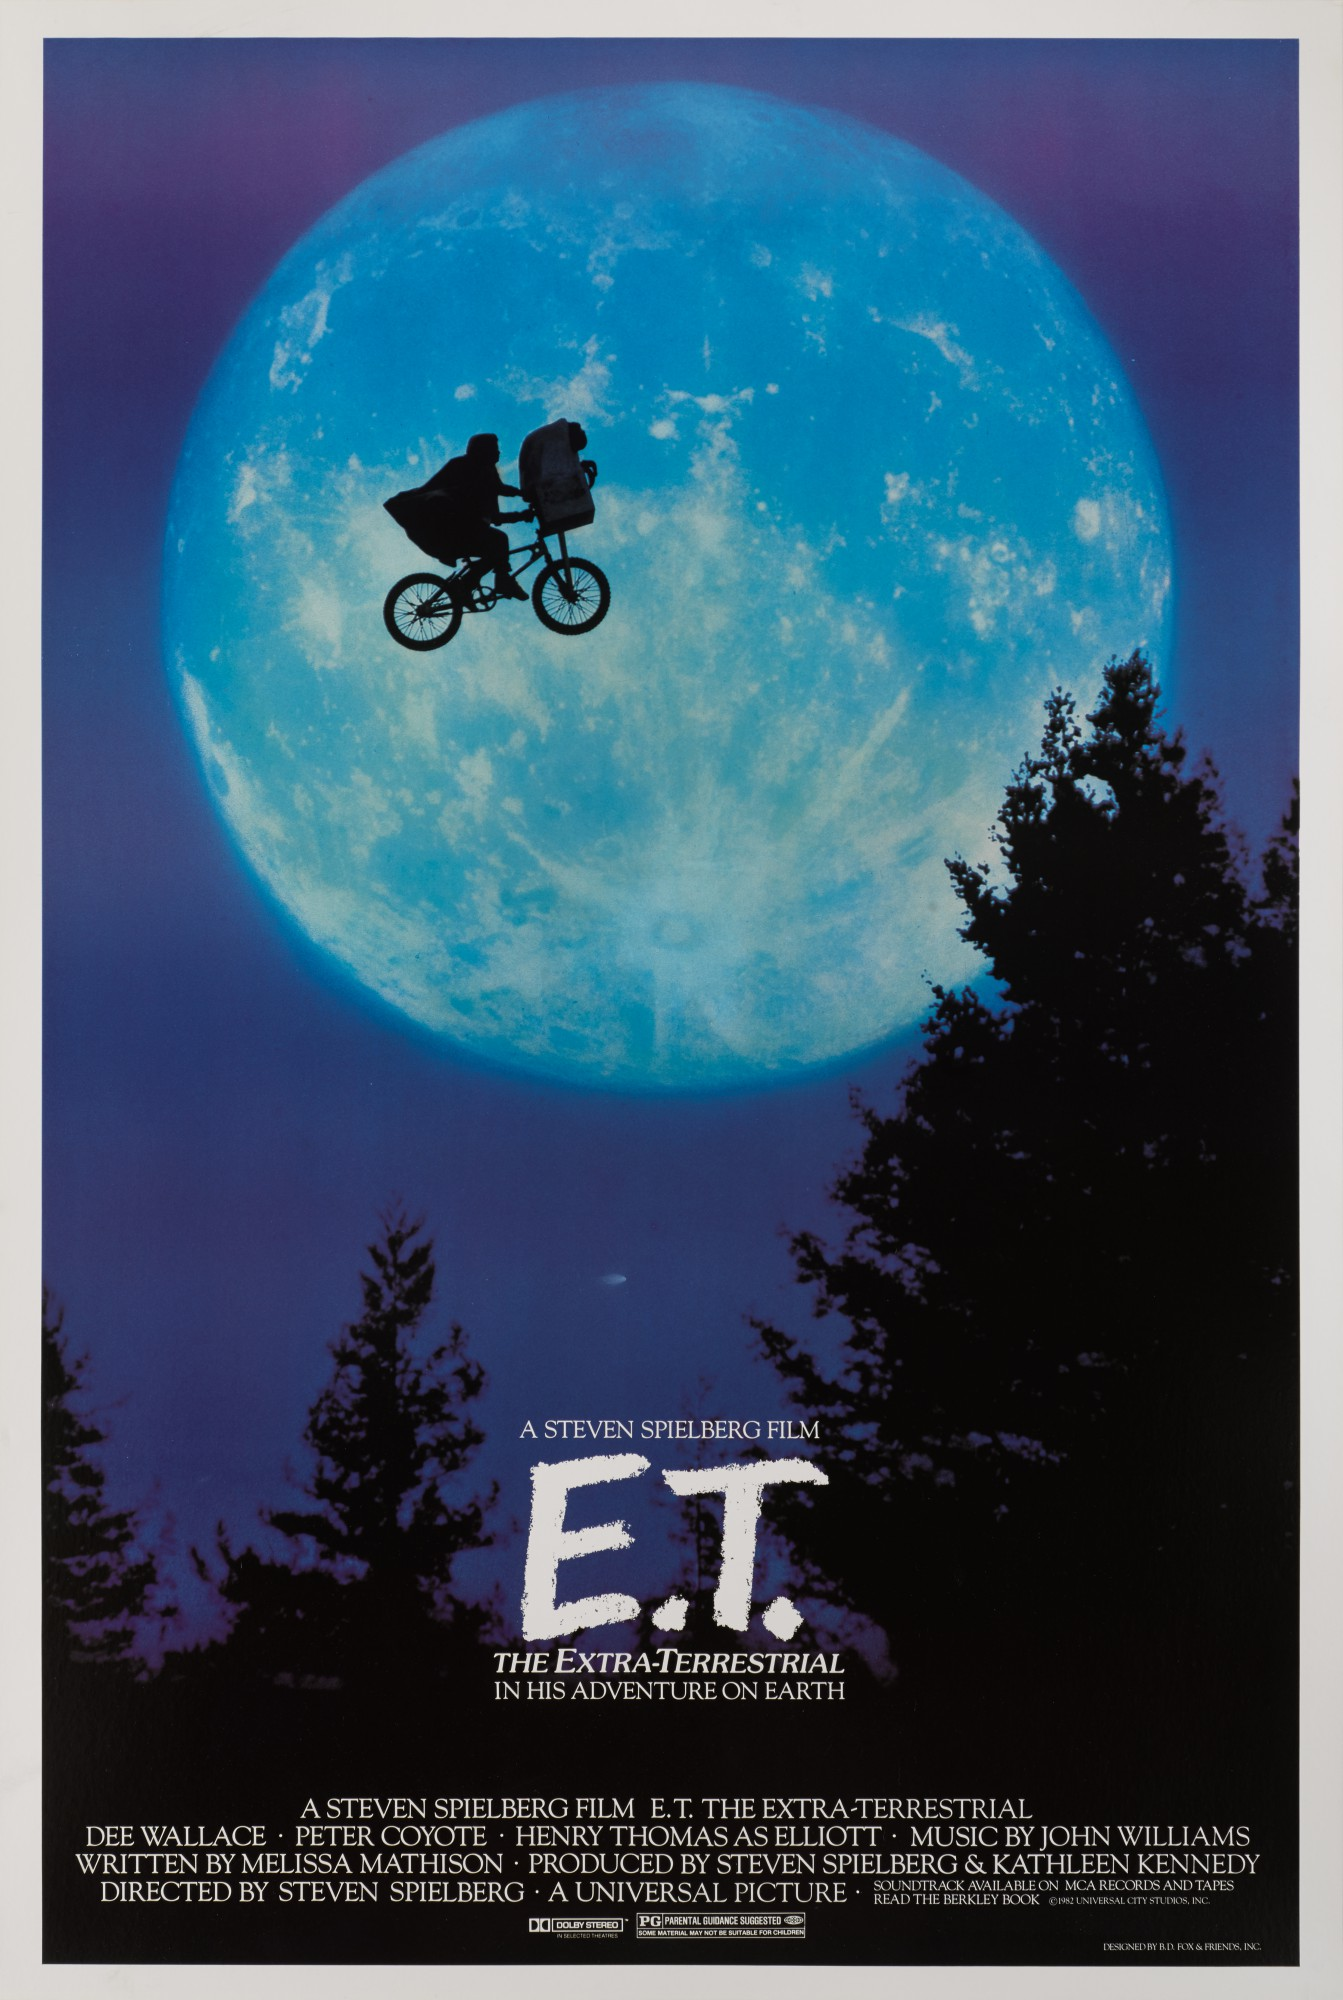 E.T. THE EXTRA TERRESTRIAL (1982) POSTER, US